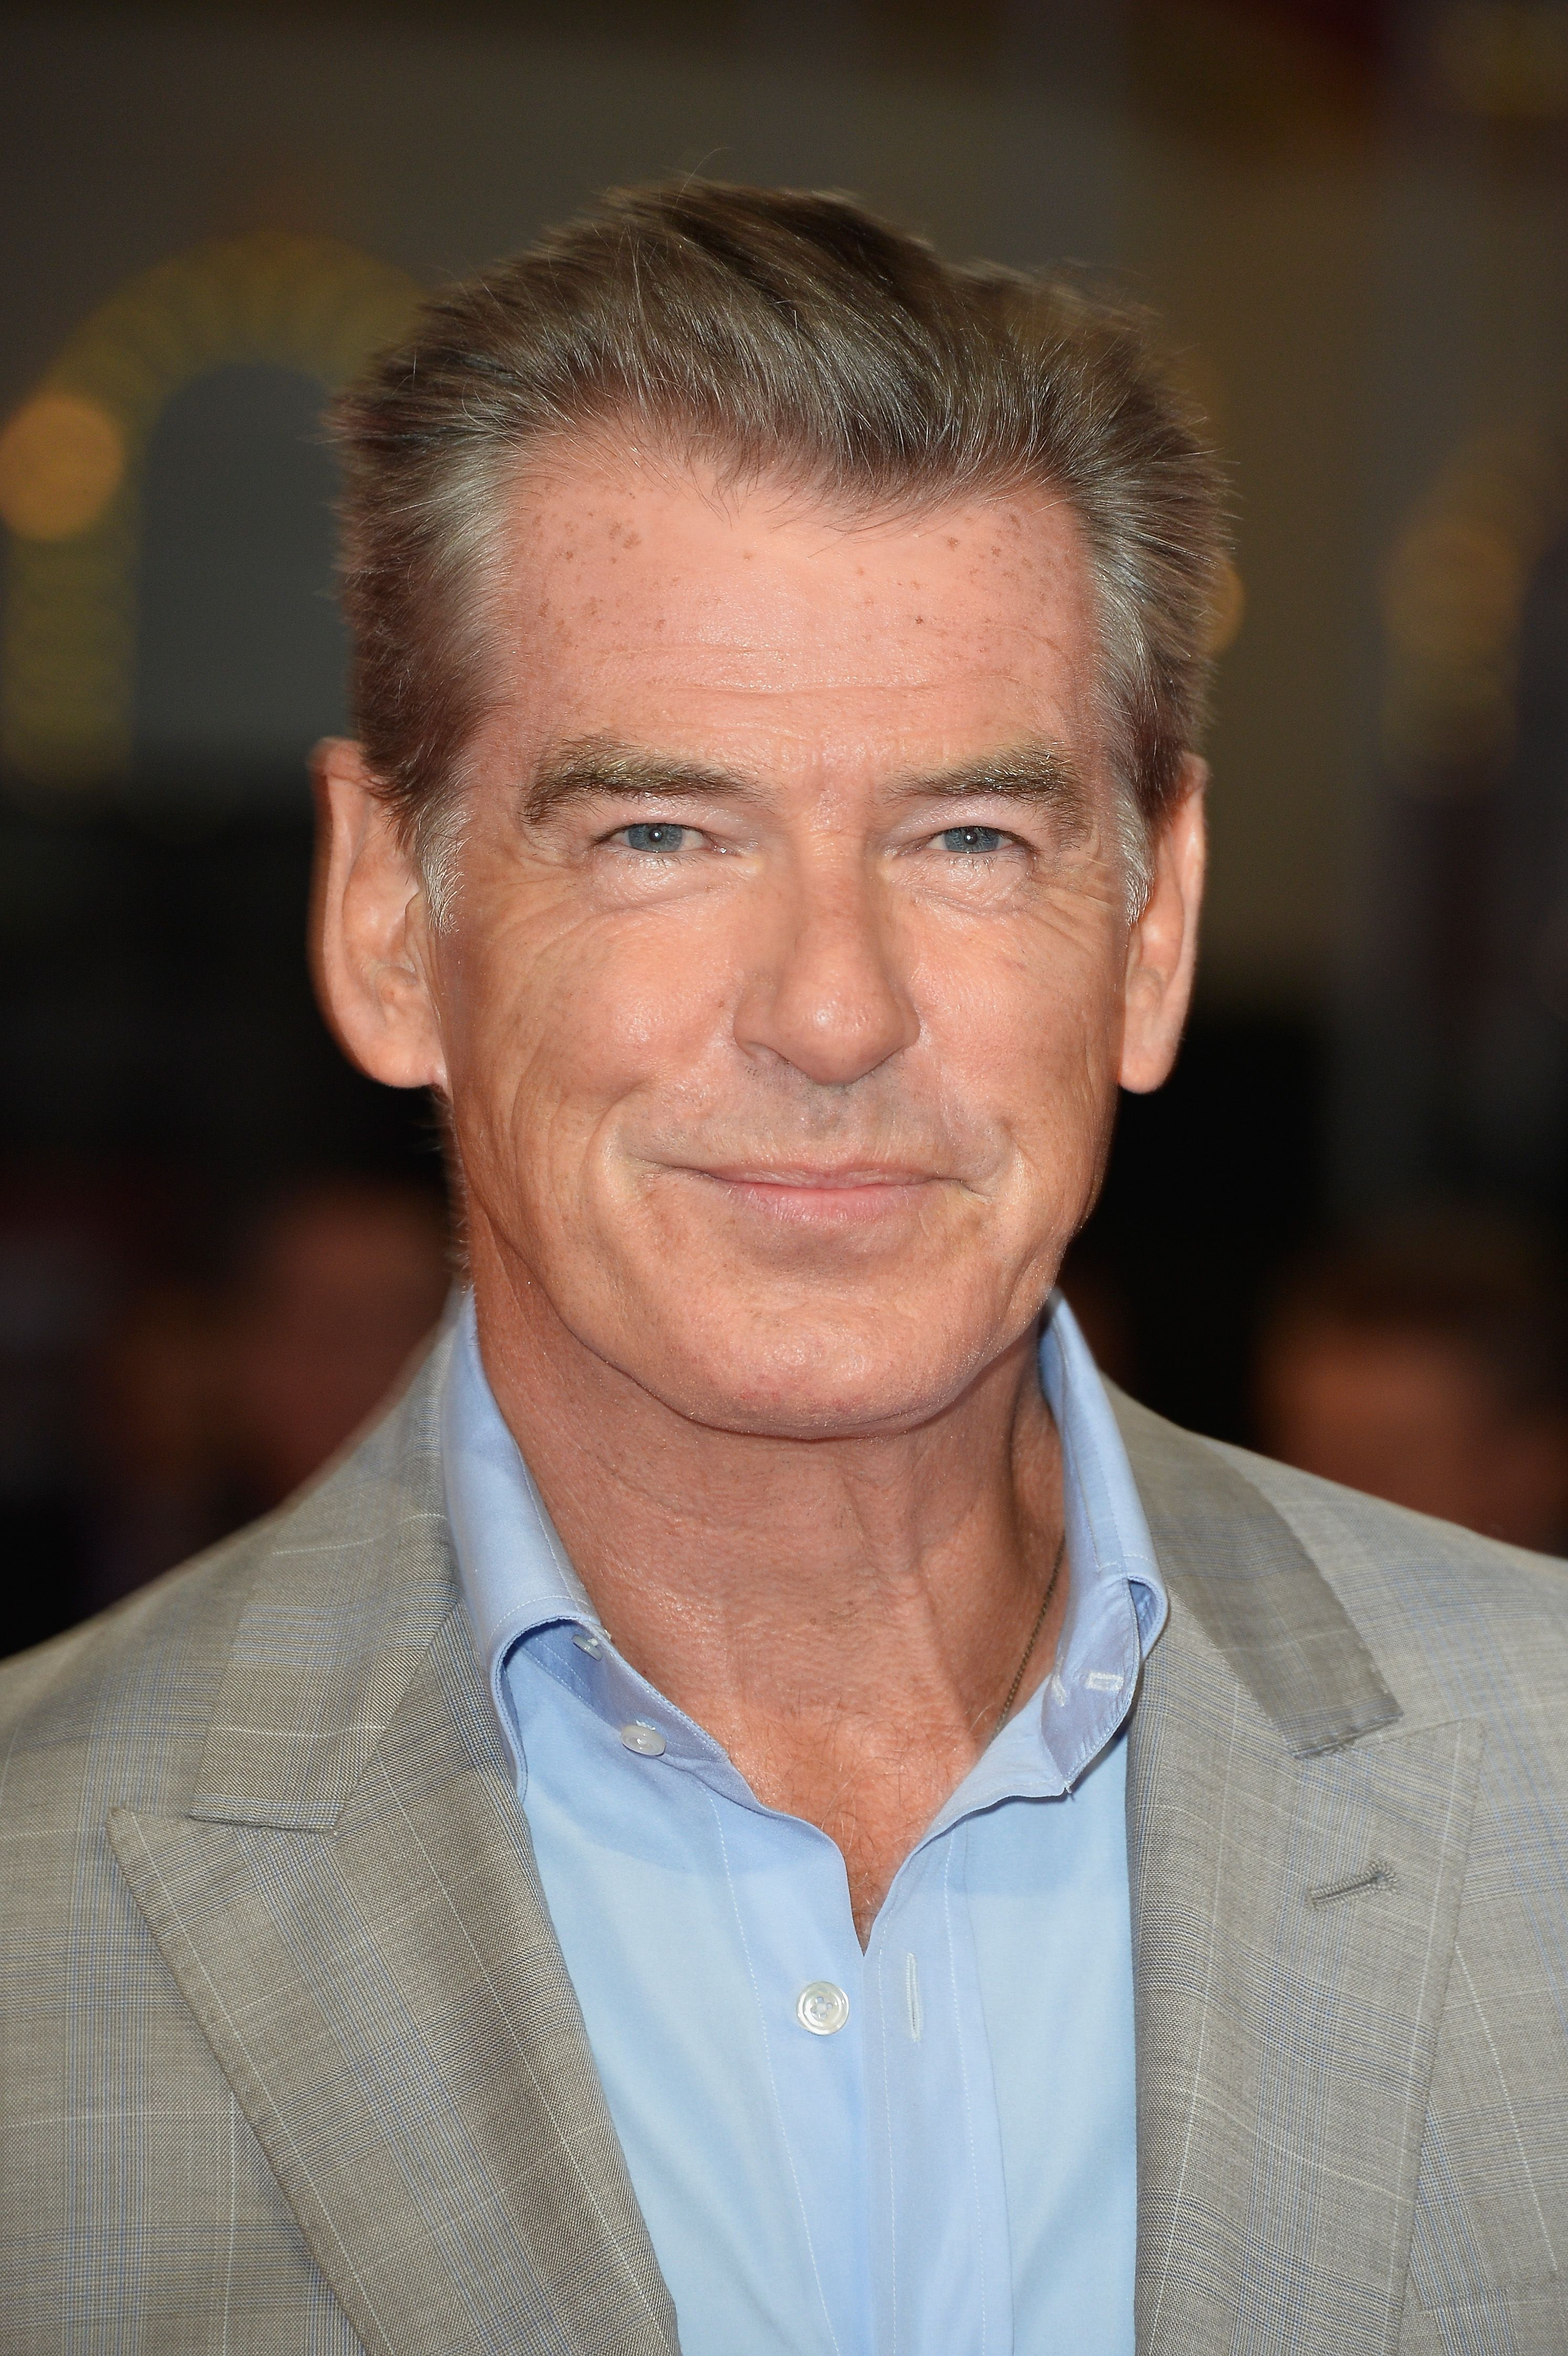 Pierce Brosnam during the 'Pasolini' premiere on September 11, 2014 | Photo: Getty Images